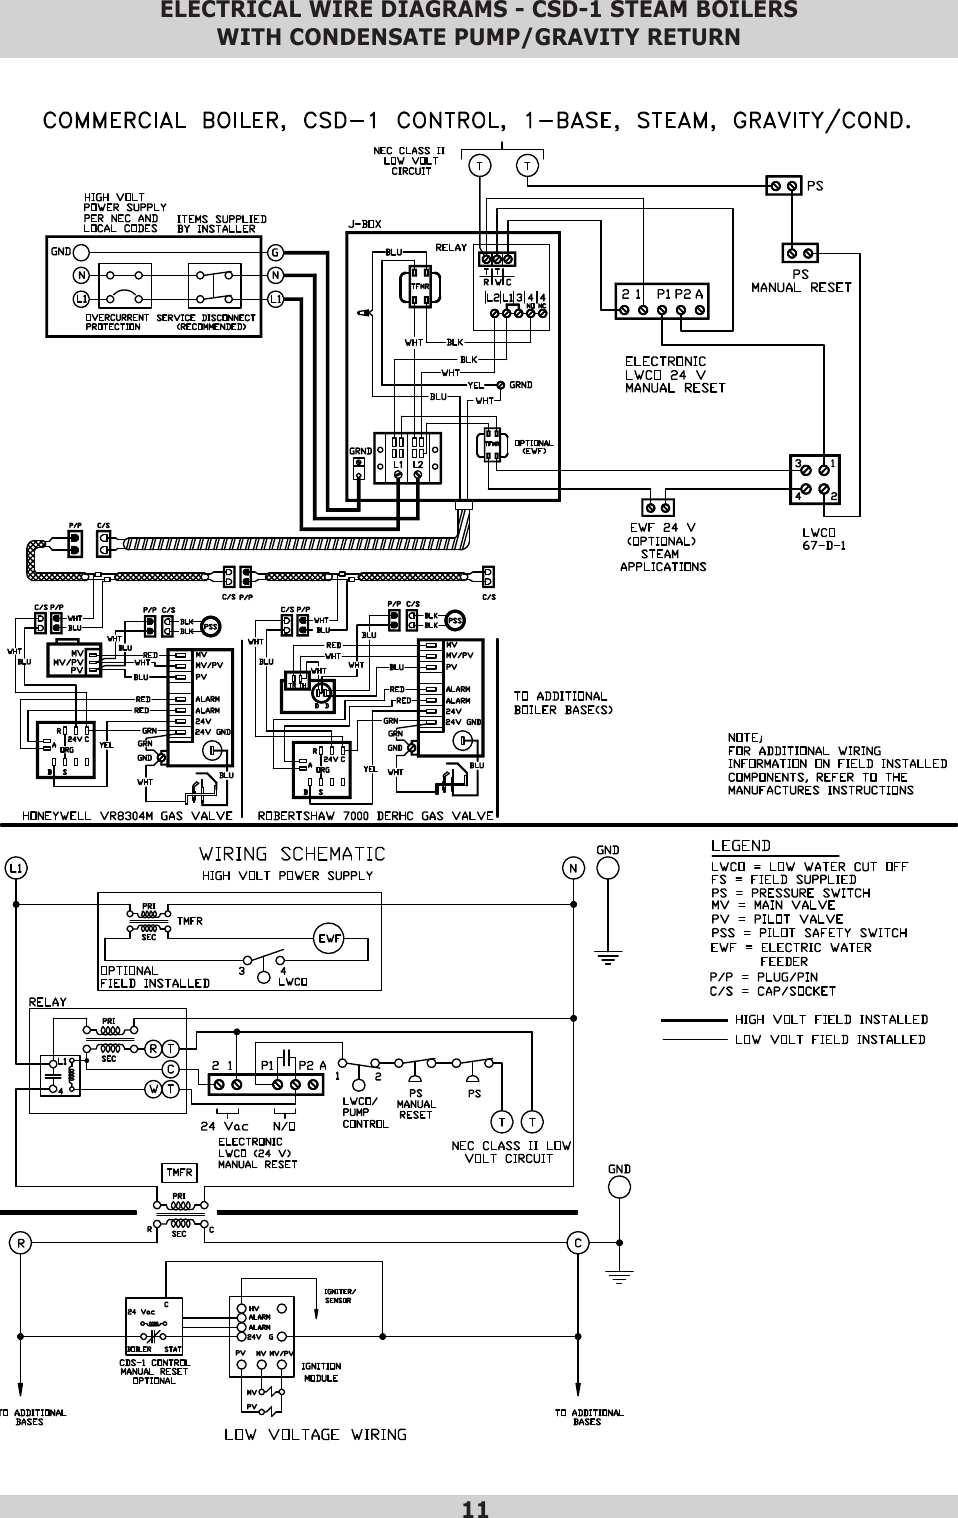 Utica Boilers Je Operation And Installation Manual on utica boiler parts, utica boiler system, utica boiler installation, a.o. smith wiring diagram, utica boiler brochure, utica boiler controls,